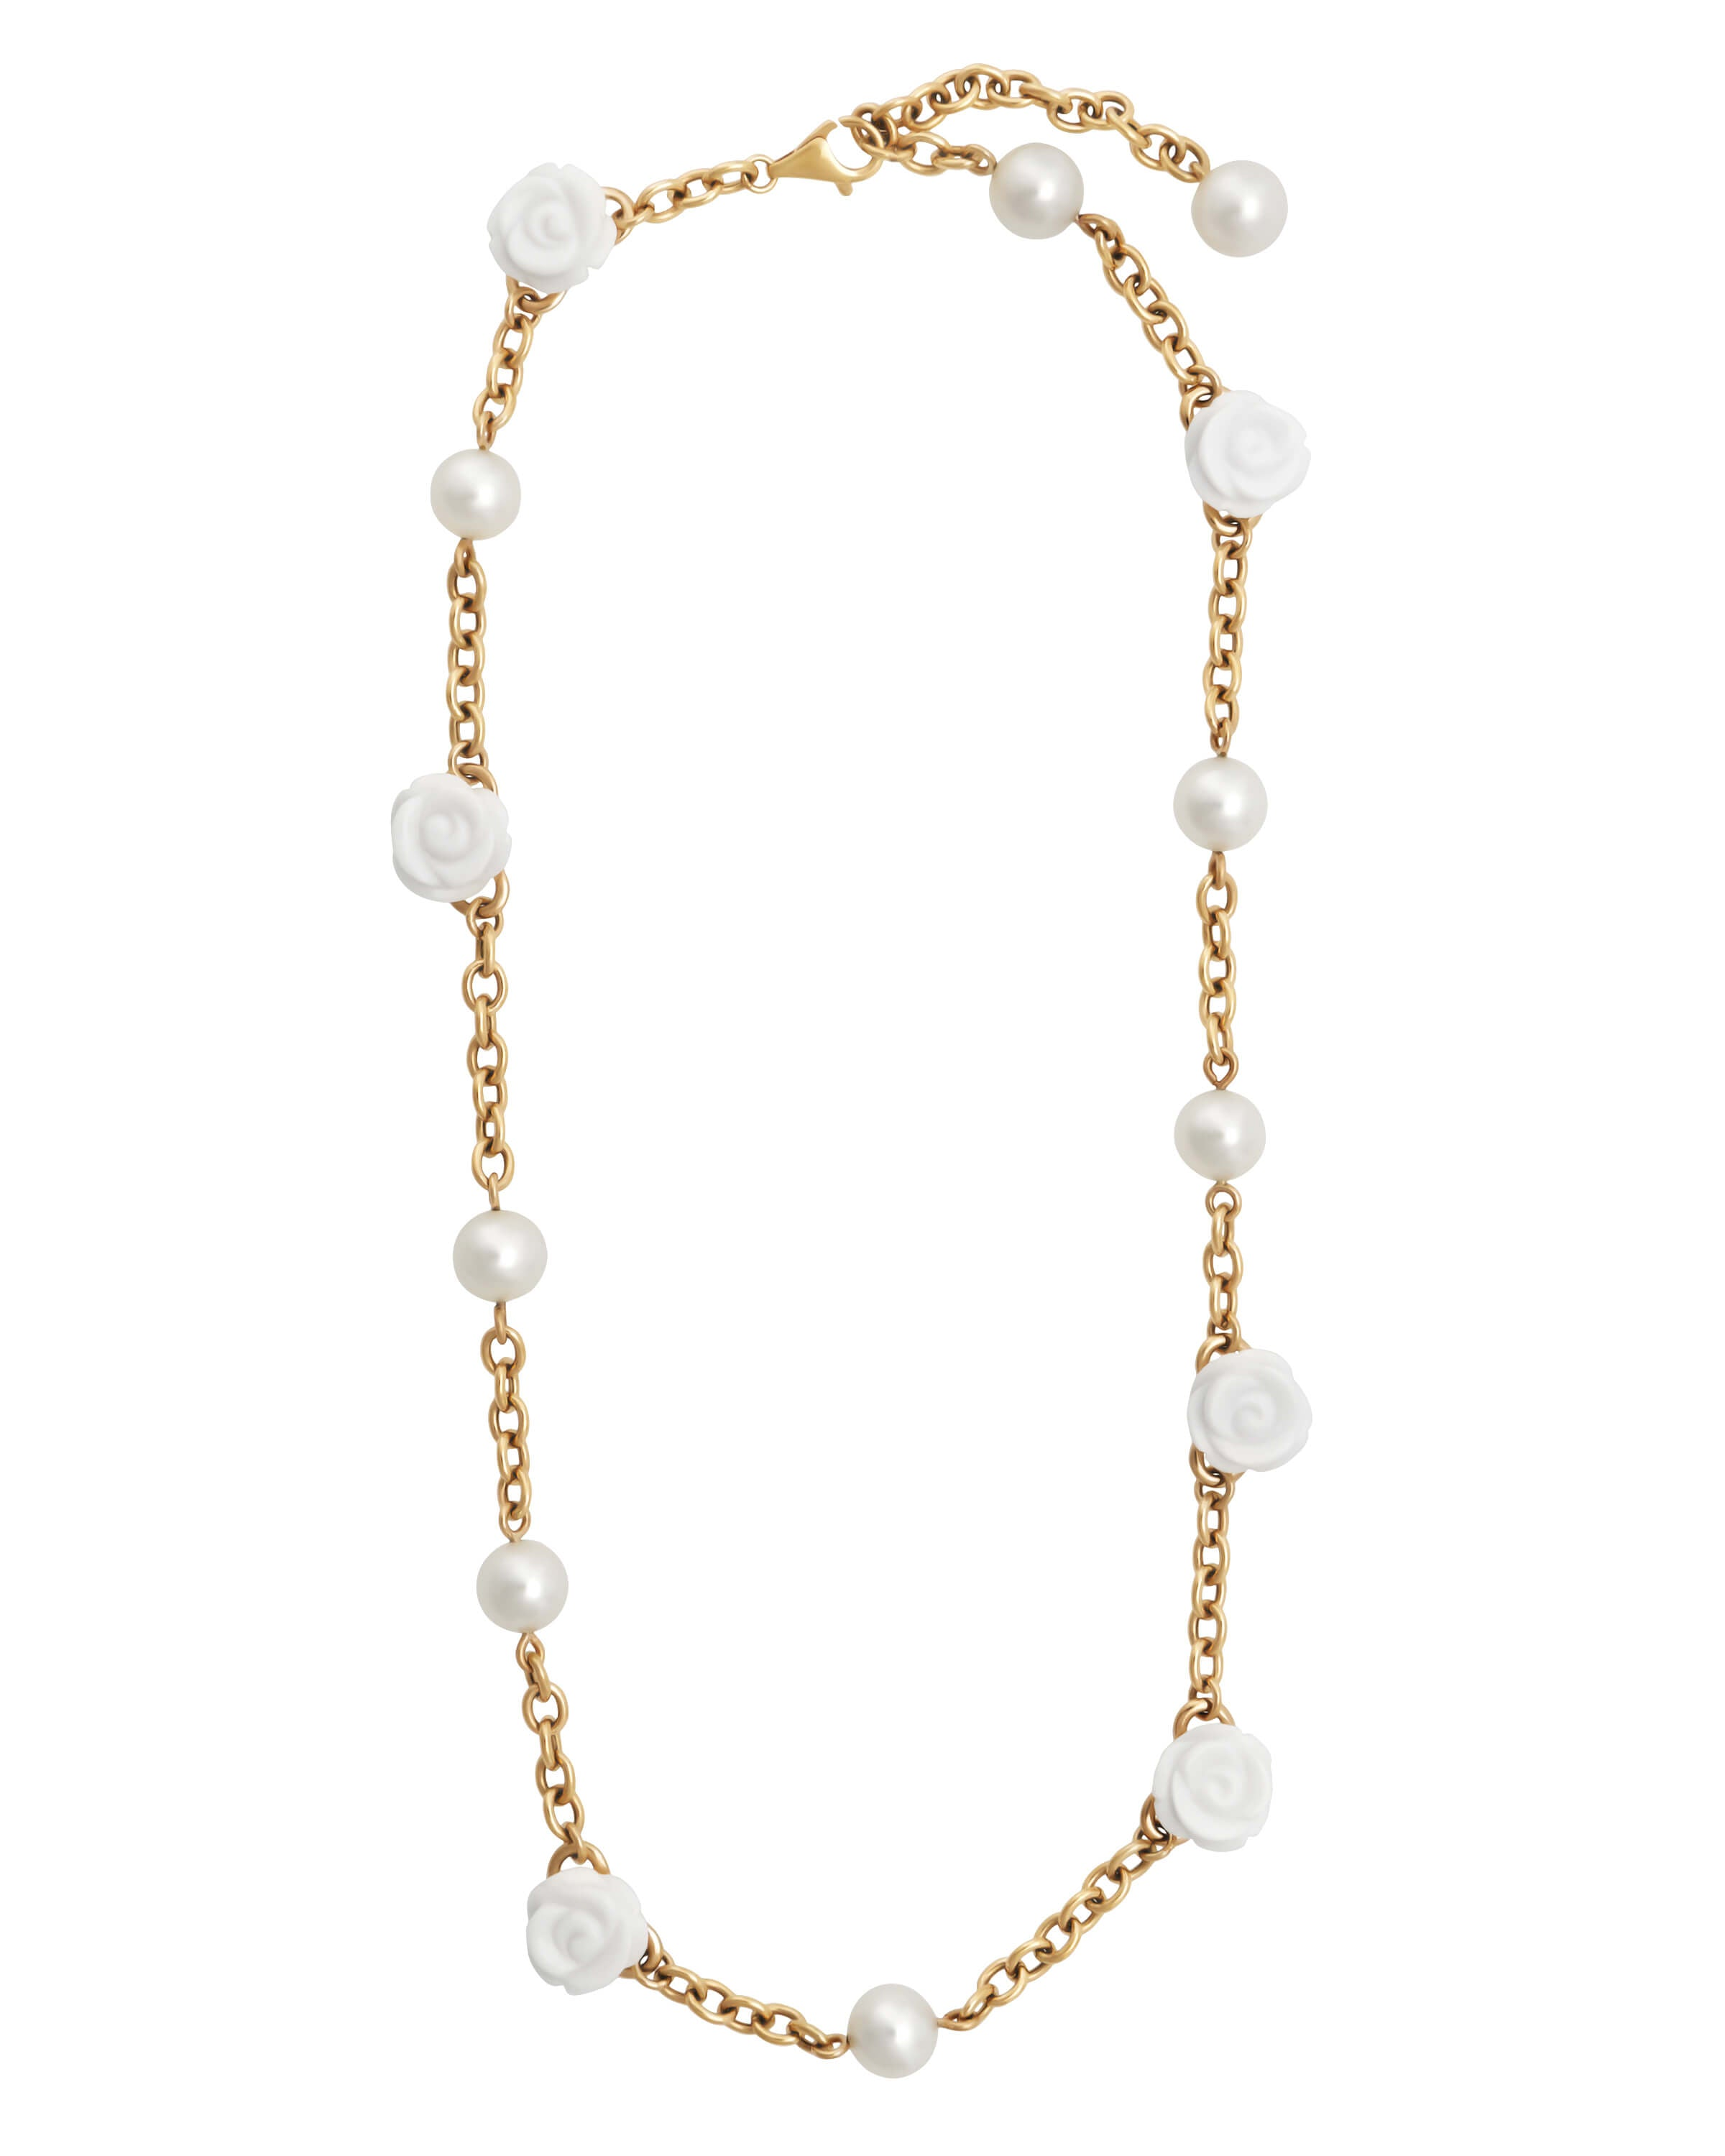 Mimi Milano Necklace In Rose 18K Gold White Agate And White Freshwater Pearls C190R1A1